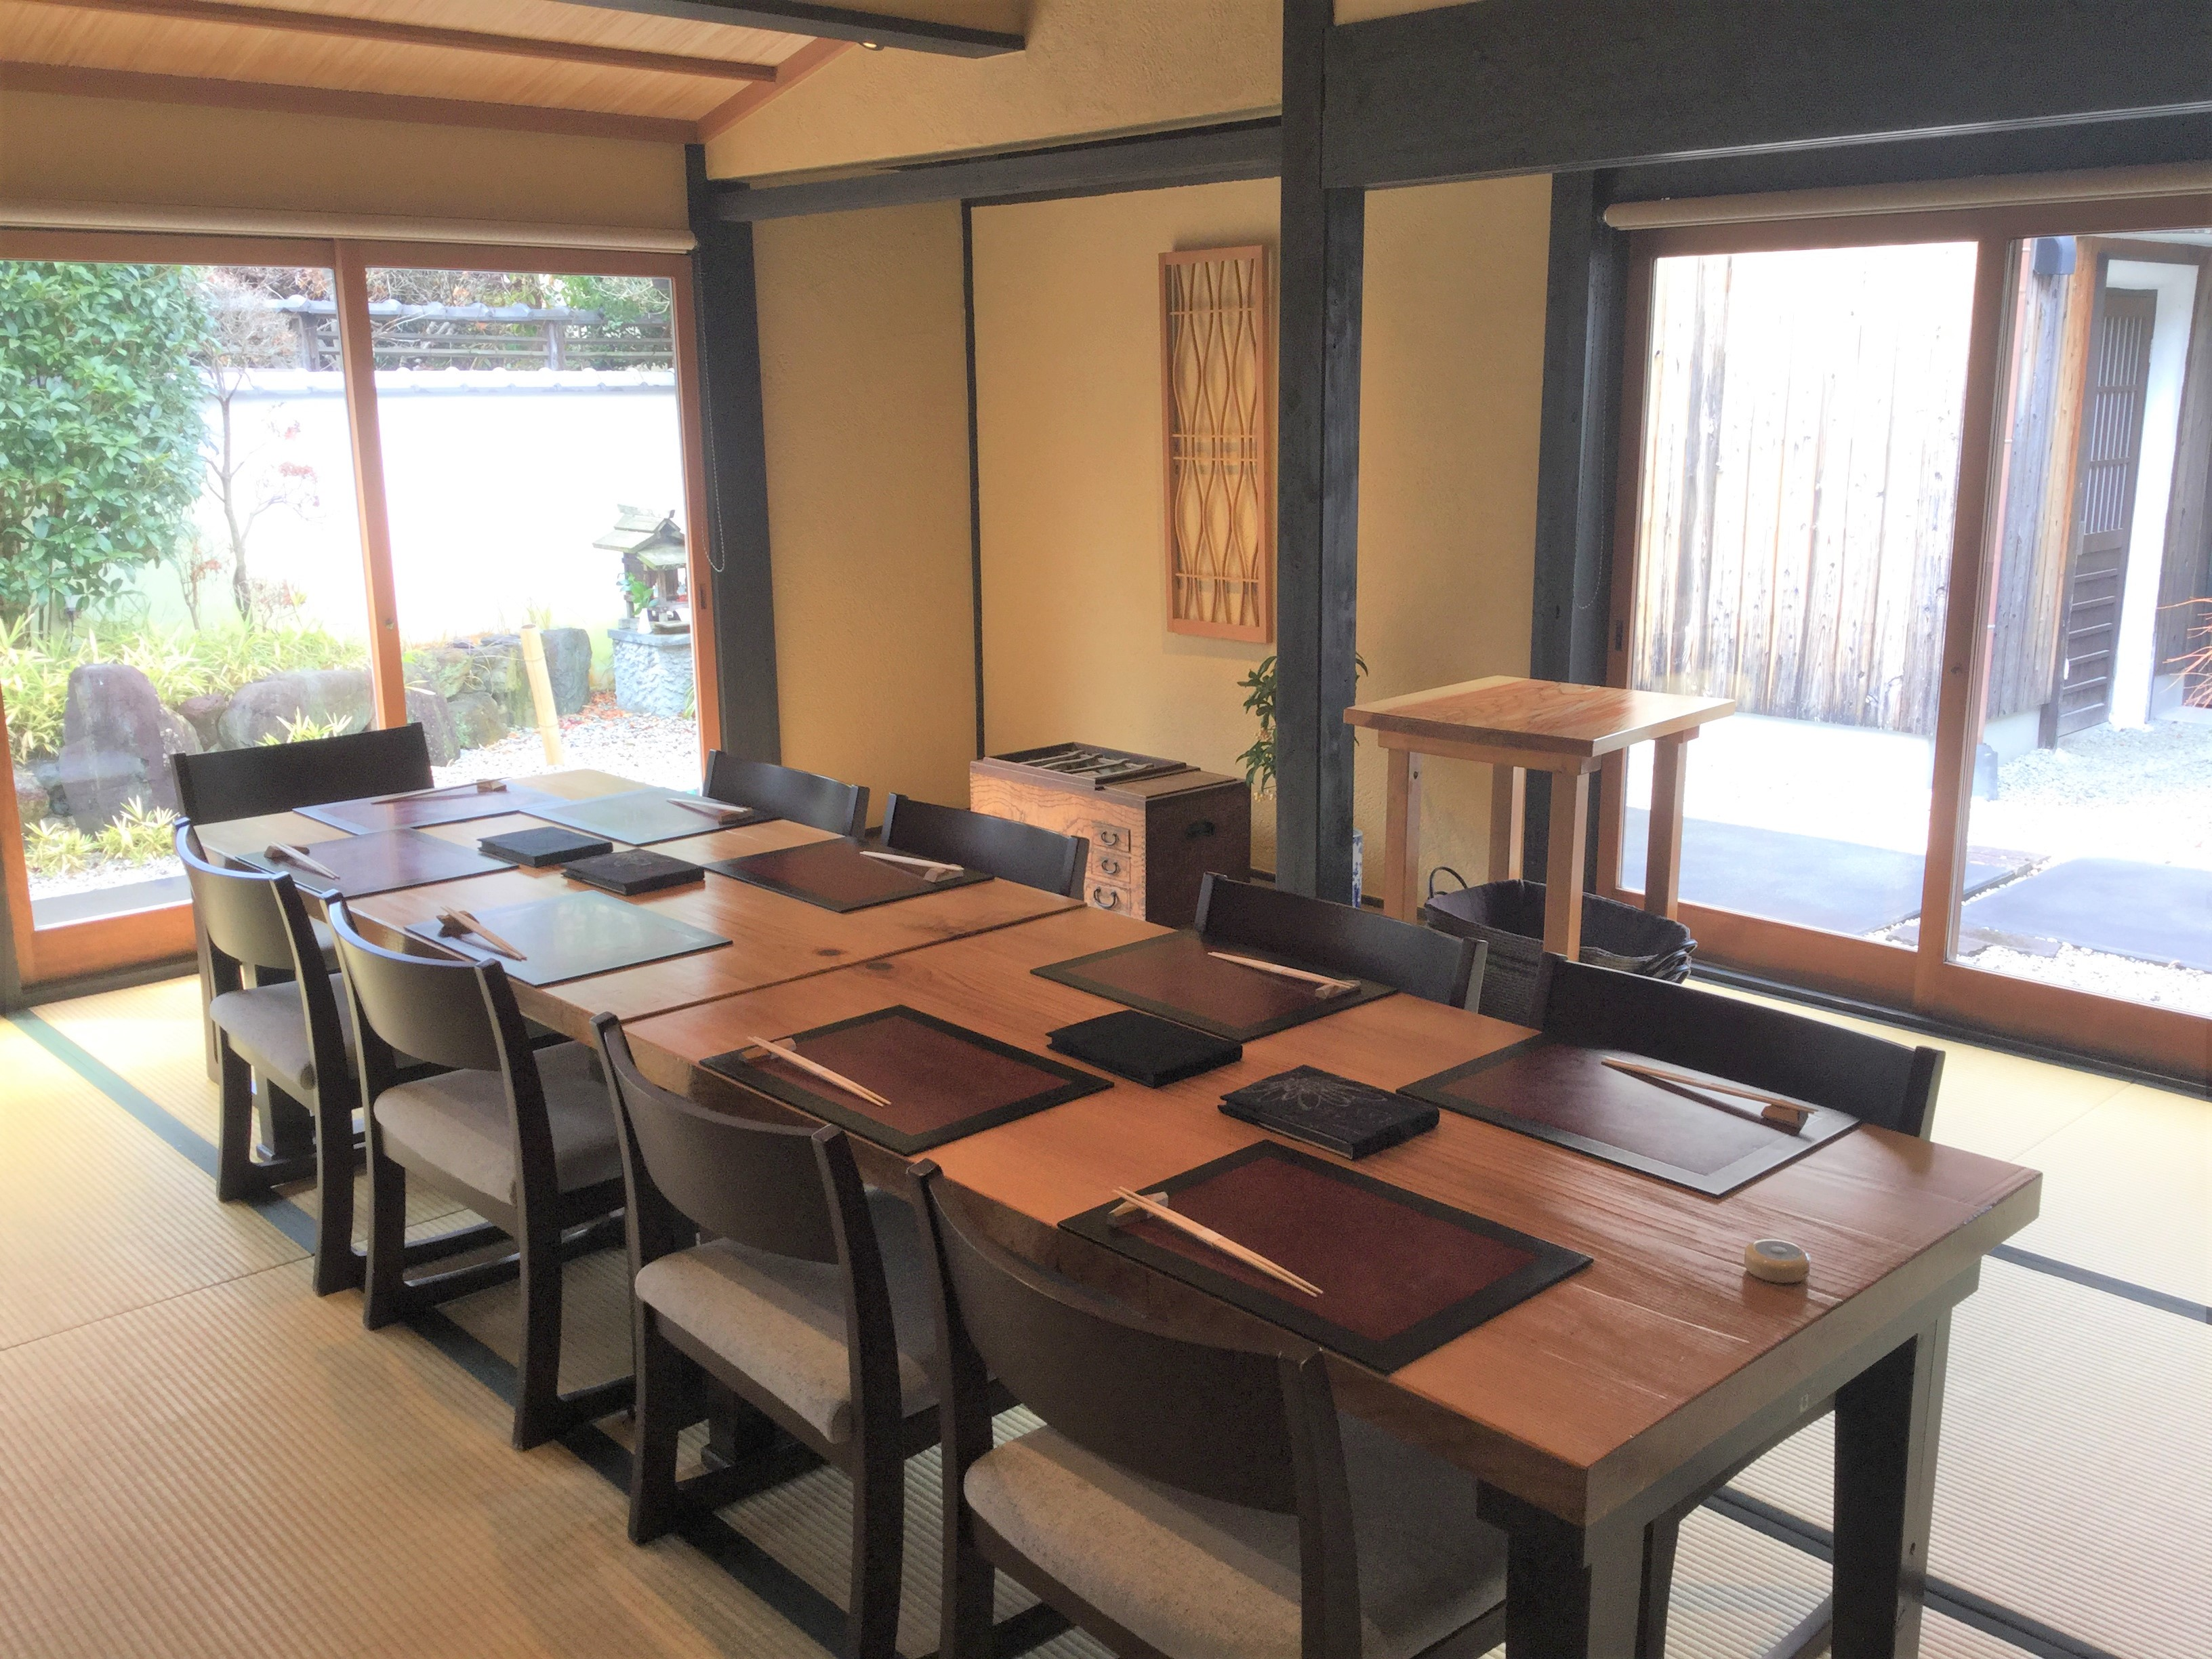 Well organised trip and excellent choices of ryokans